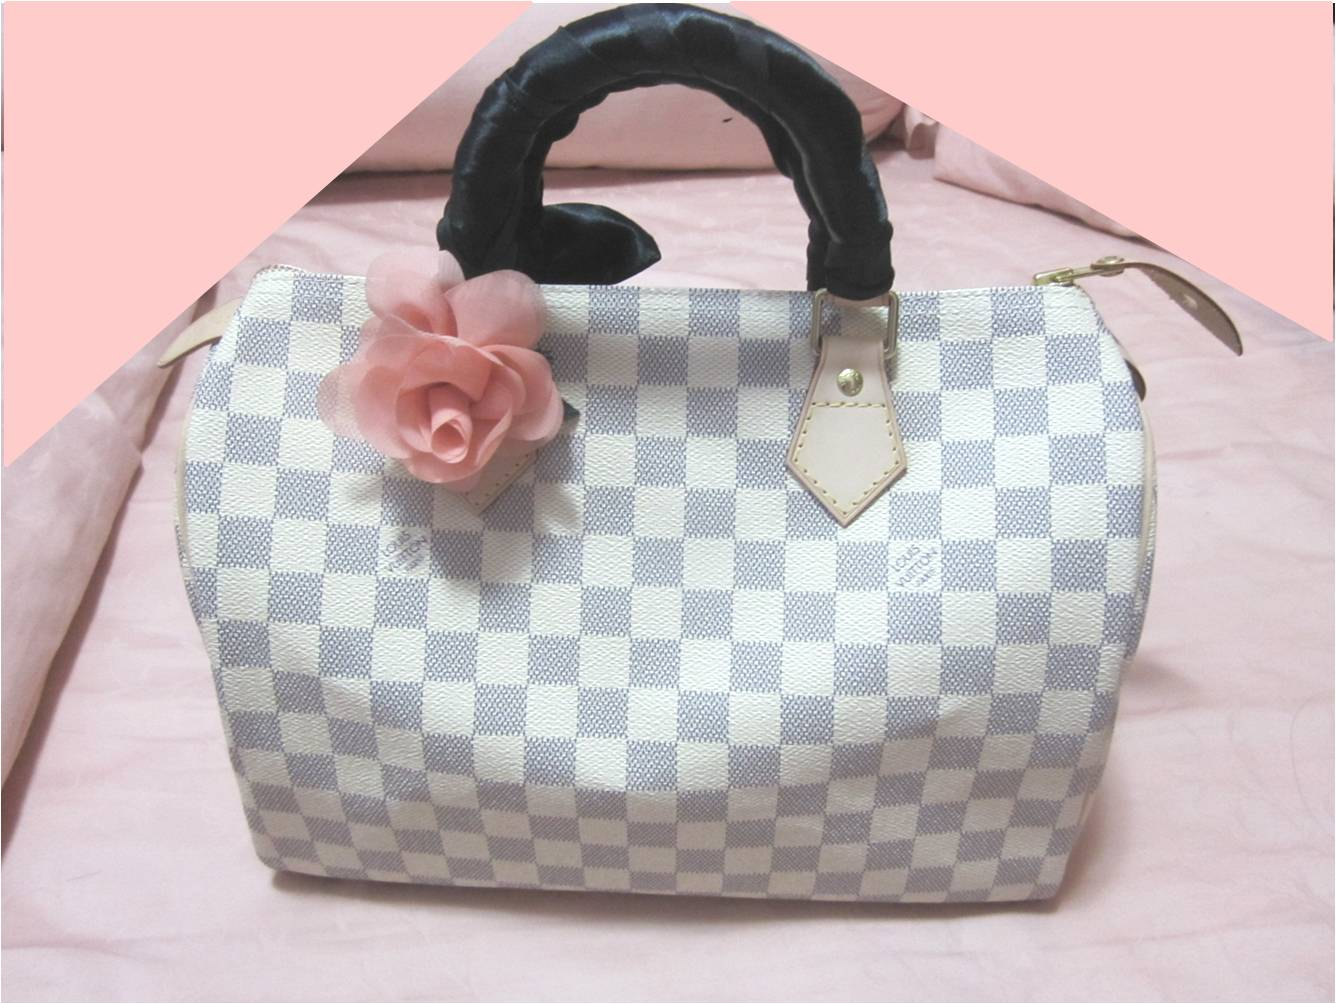 Style up your bag for a different look every dayor even to cover